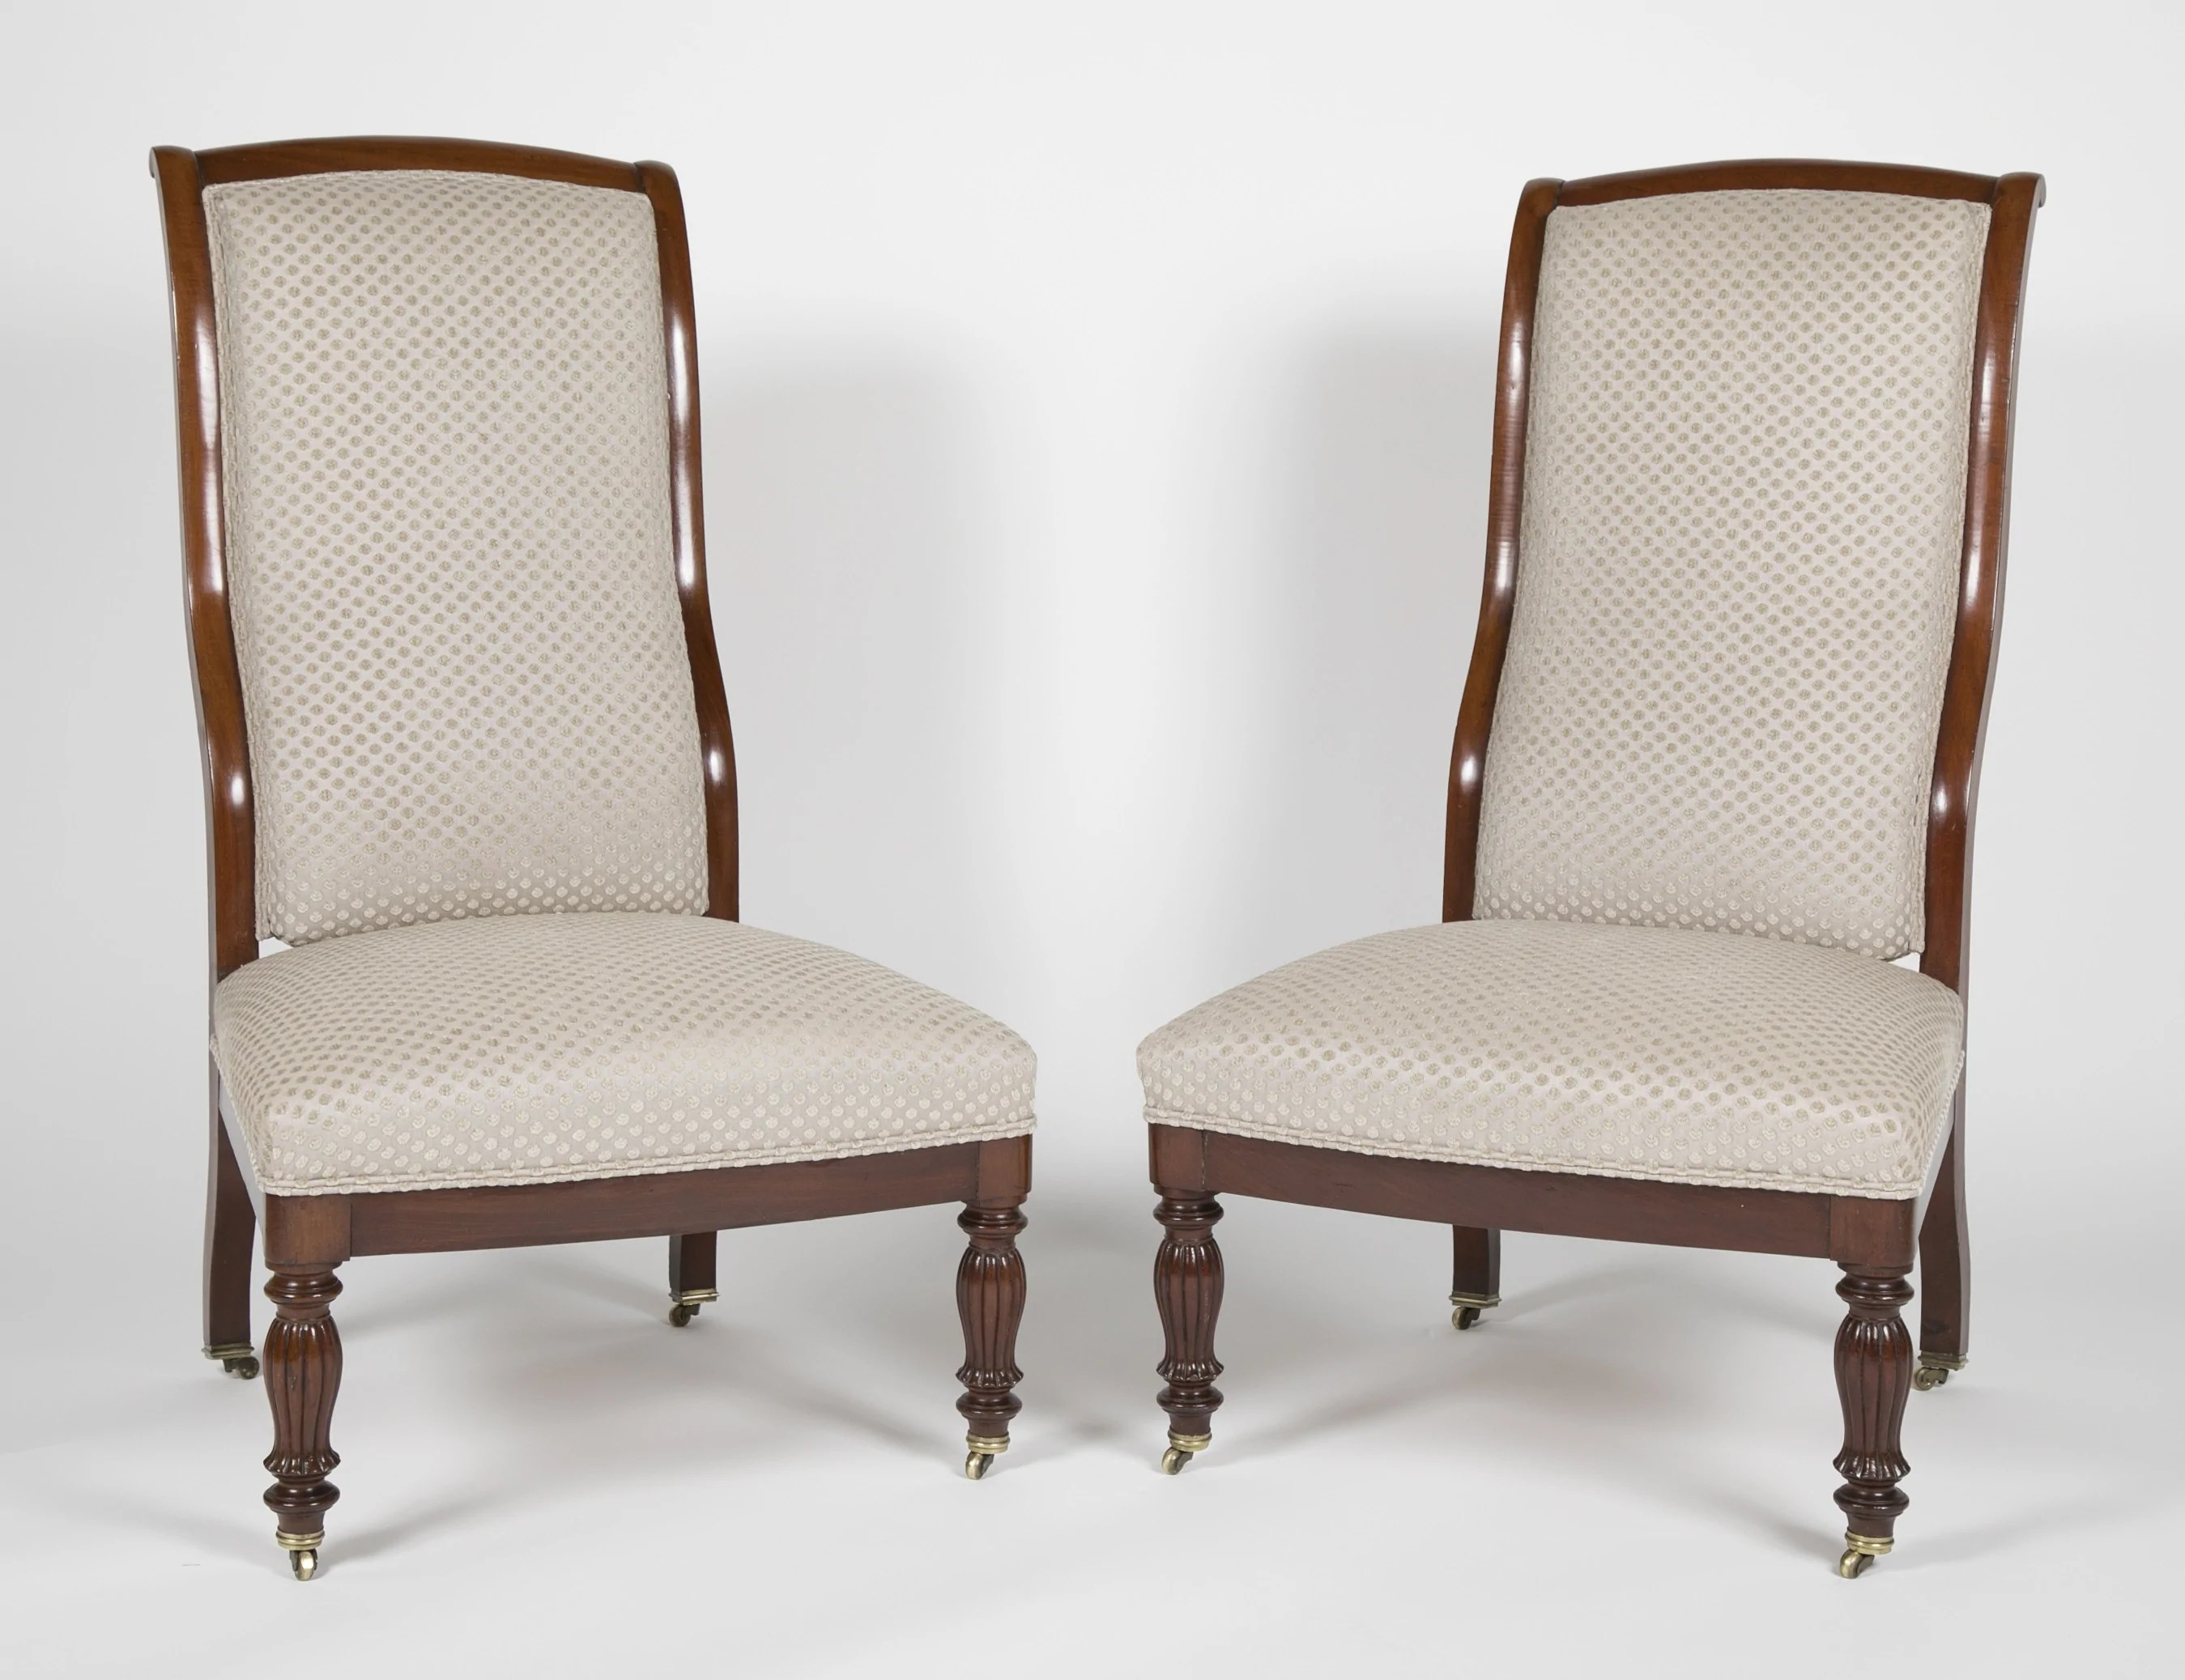 Matched Pair Of Early Louis Philippe Mahogany Slipper Chairs